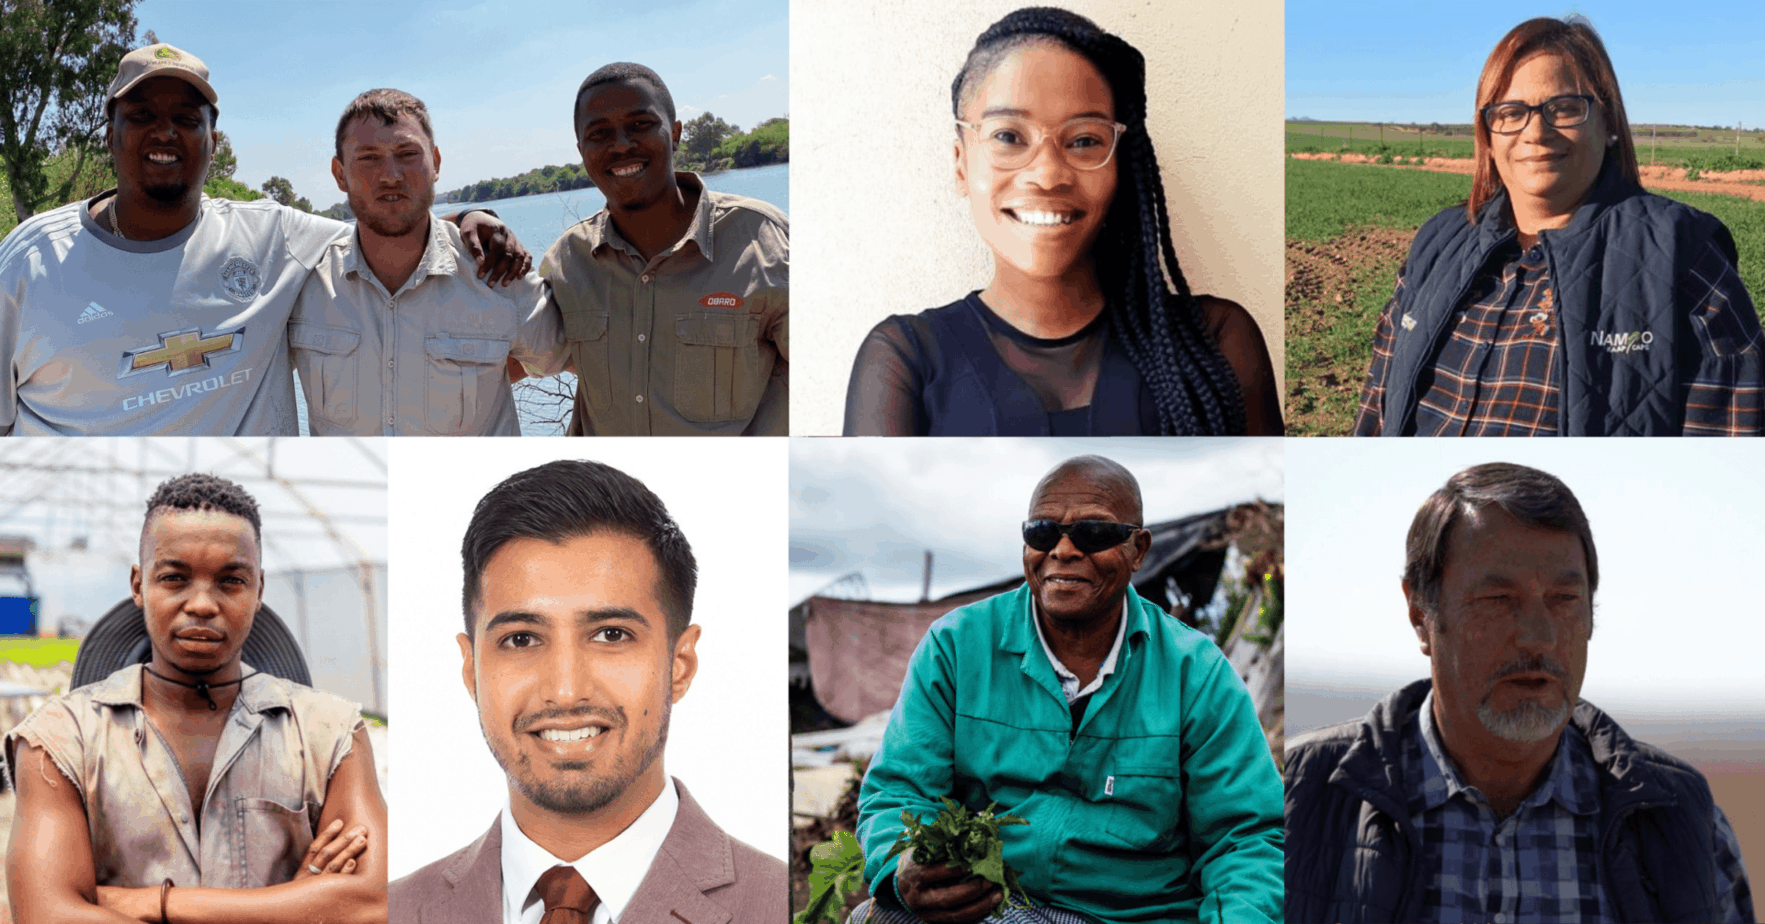 """The agricultural sector is filled with stories of inspiration. Pictured clockwise from the top left are Free State farming """"brothers"""" Buzwe Pama, Pieter van Heerden and Buchule Jack, Grain SA economist Ikageng Maluleke, Western Cape grain farmer Alfreda Mars, VKB director and farmer Coenraad Fick, township gardener Vuyo Tsika, exporter Uzair Essack and aquaponics pioneer Mosesi Mosesi. Photos: Supplied"""